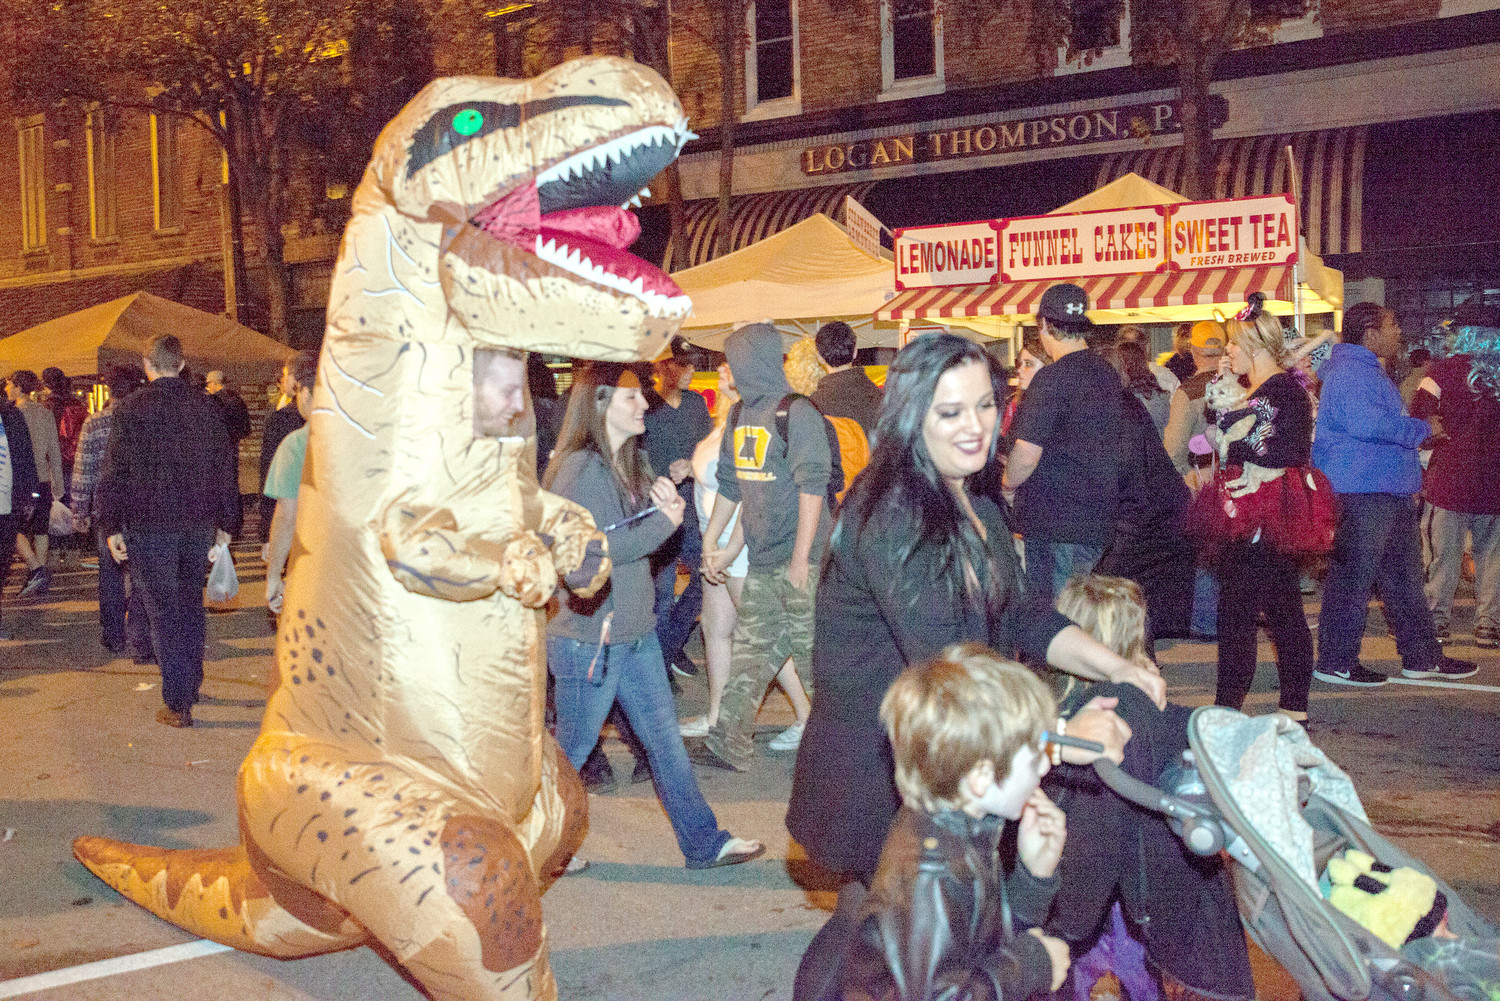 THE HALLOWEEN Block Party welcomed plenty of unique monsters, one of which was this Tyrannosaurus rex.